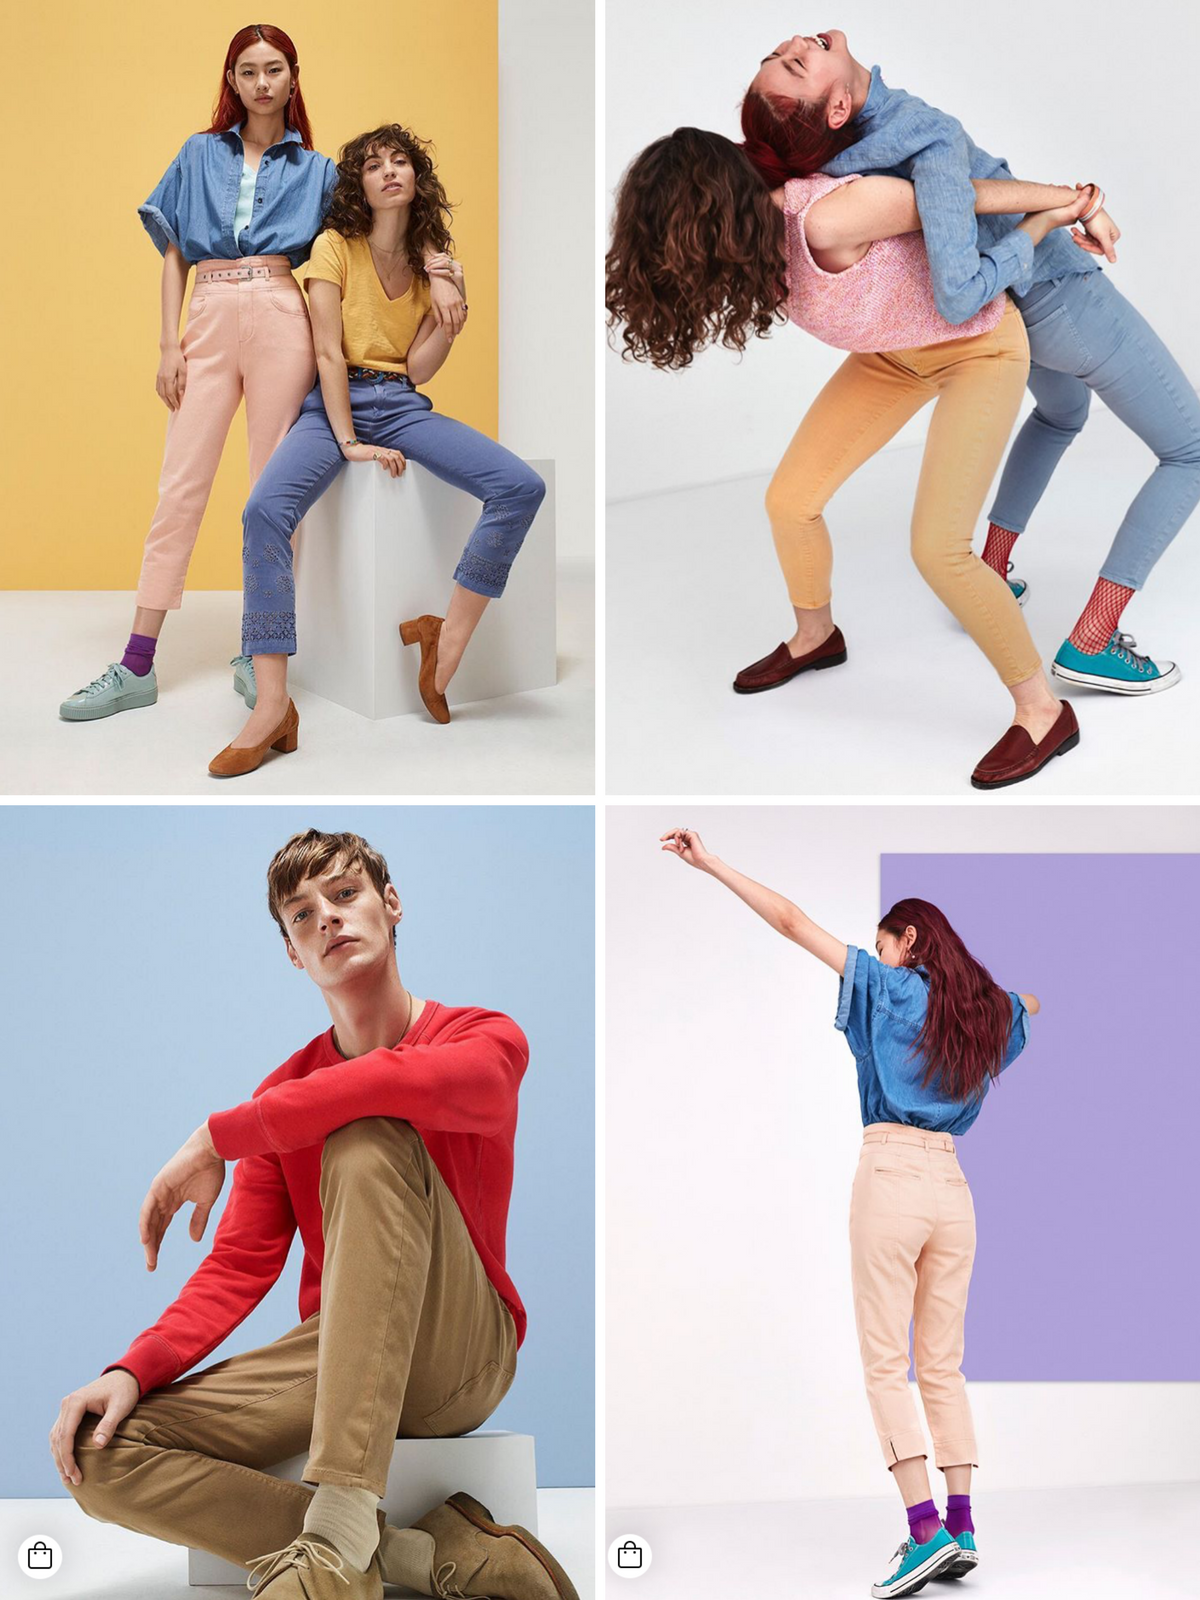 men and women wearing colorful socks and clothing